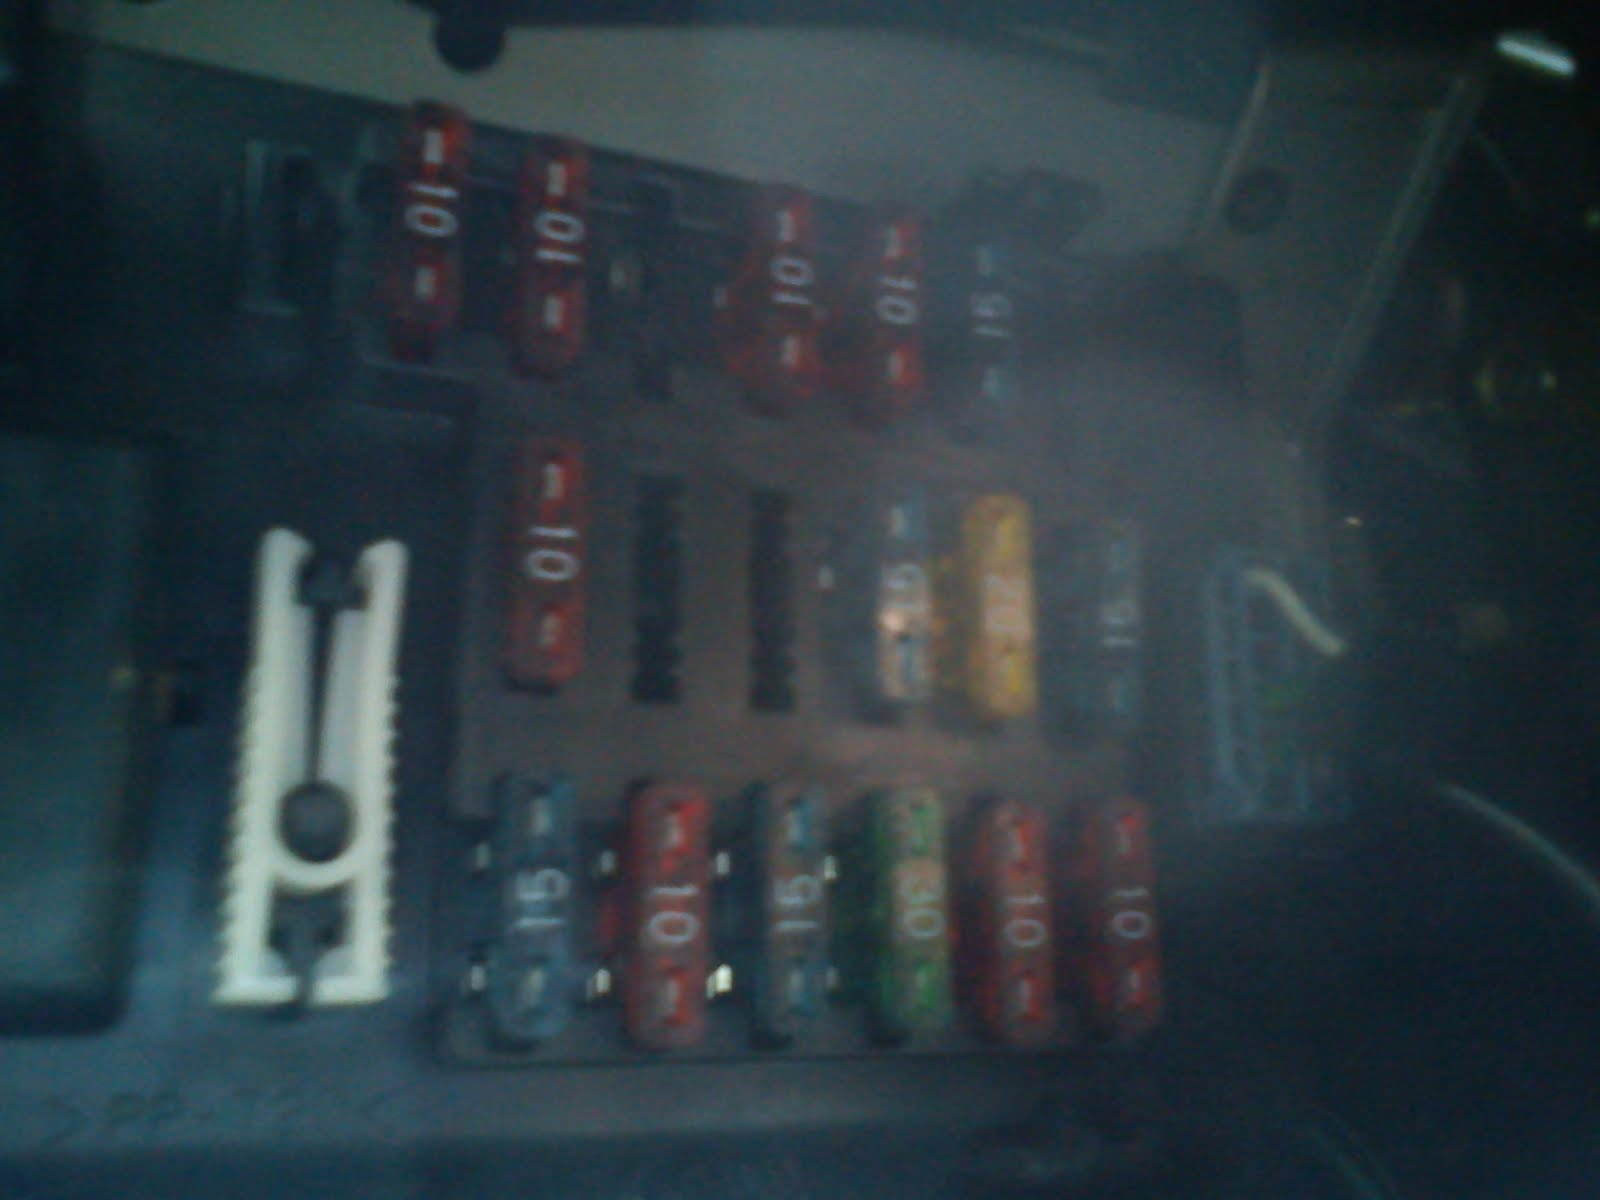 hight resolution of fuse box kancil 850 wiring library7 susunan di dalam kotak fius